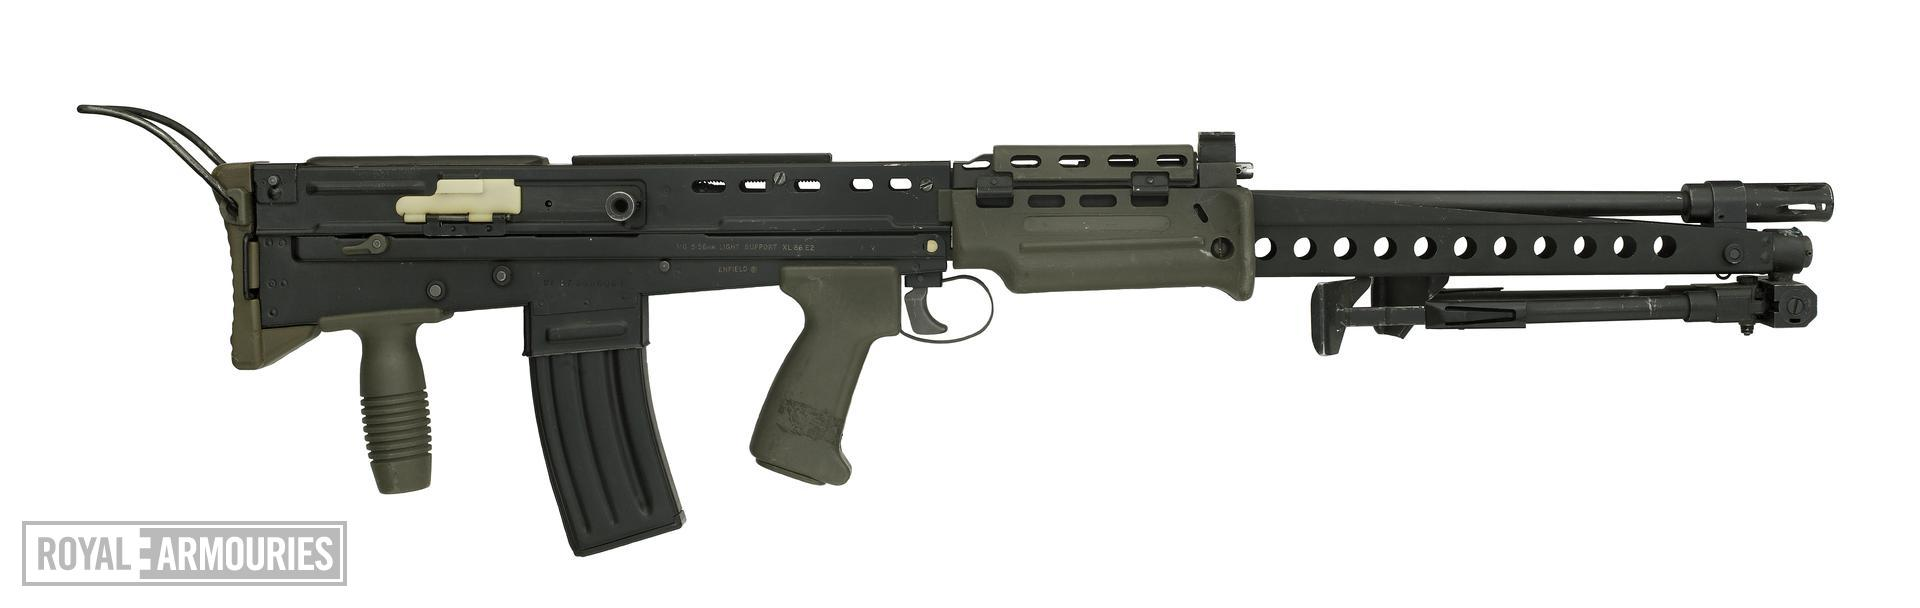 Centrefire automatic military rifle - SA80, XL86E2, experimental